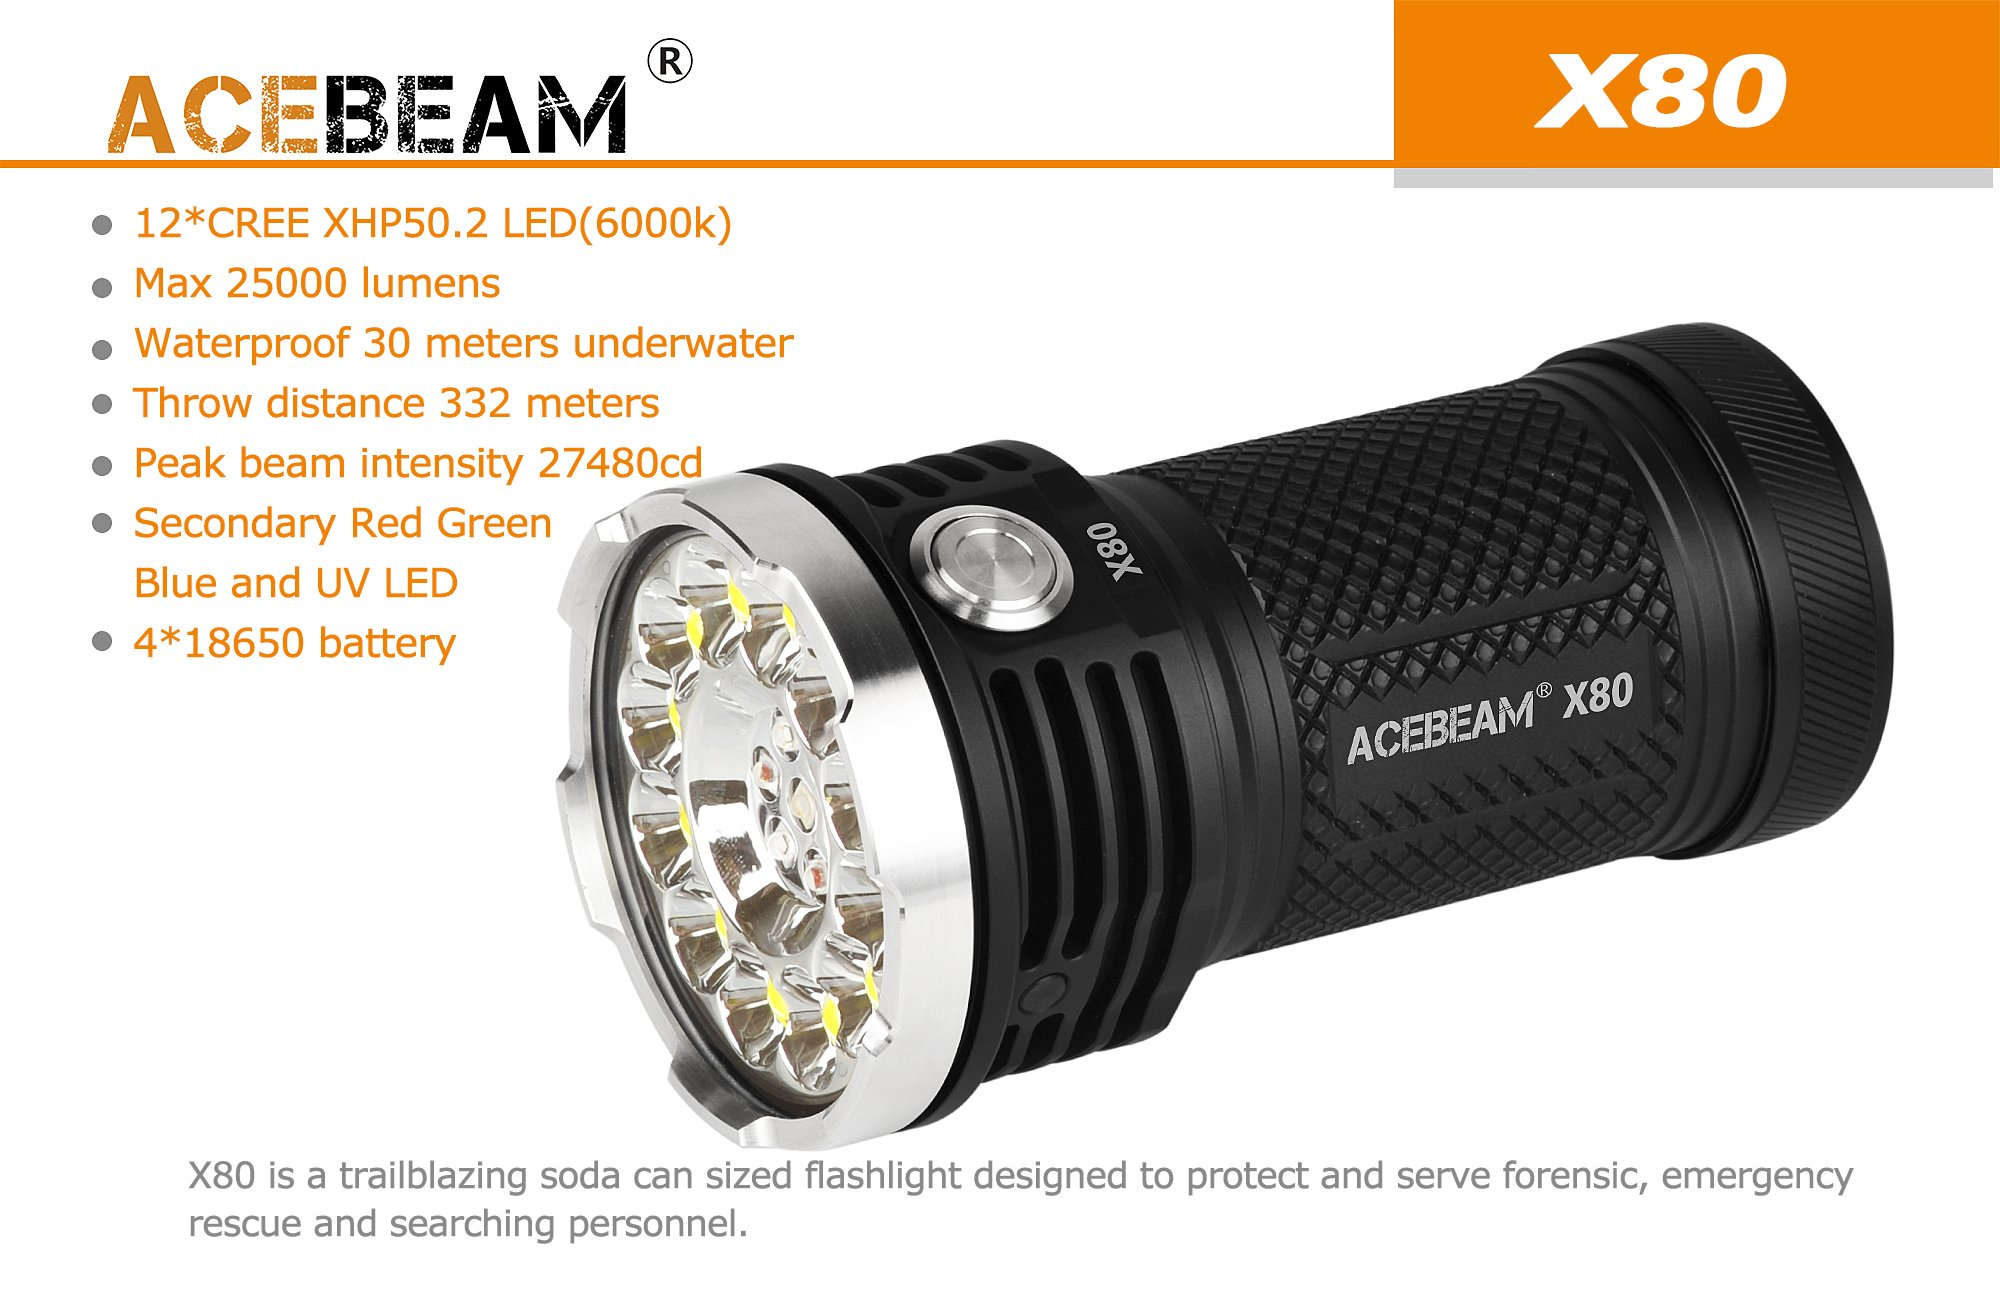 AceBeam X80 Flashlight 25000 Lumens 5-color Light Beam Flashlights Included Batteries by ACEBEAM (Image #4)